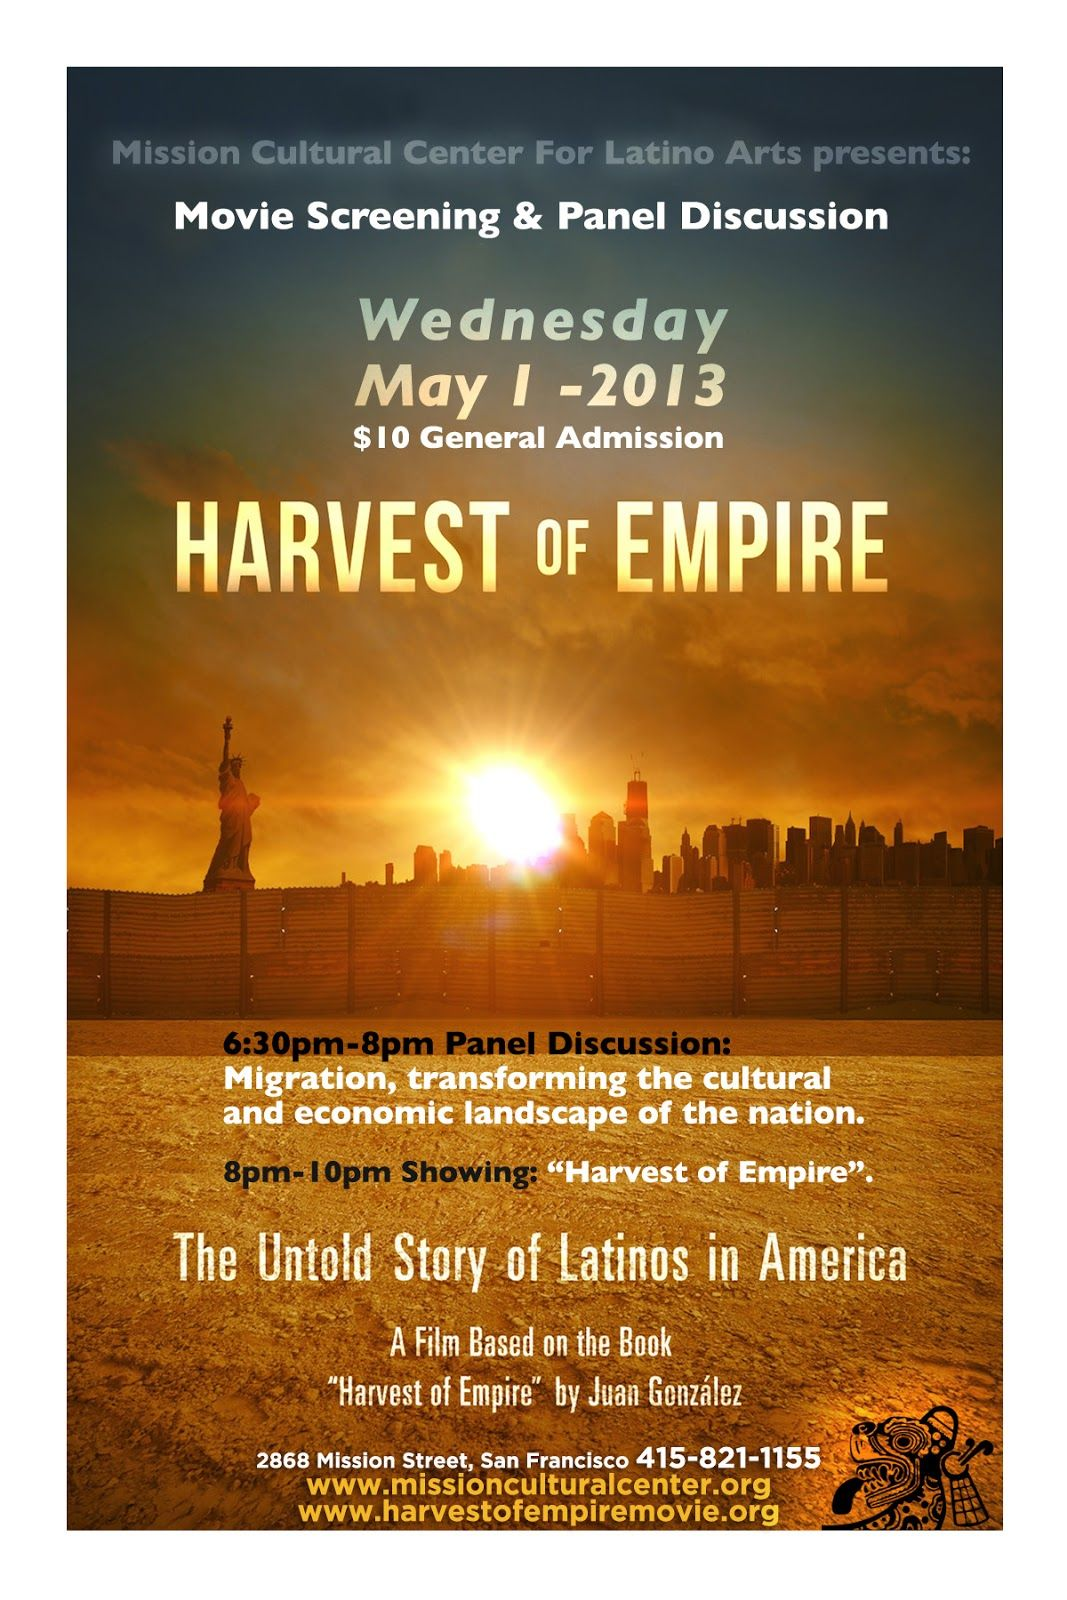 Harvest Of Empirer Movie Panel Discussion Wednesday May 1 2013